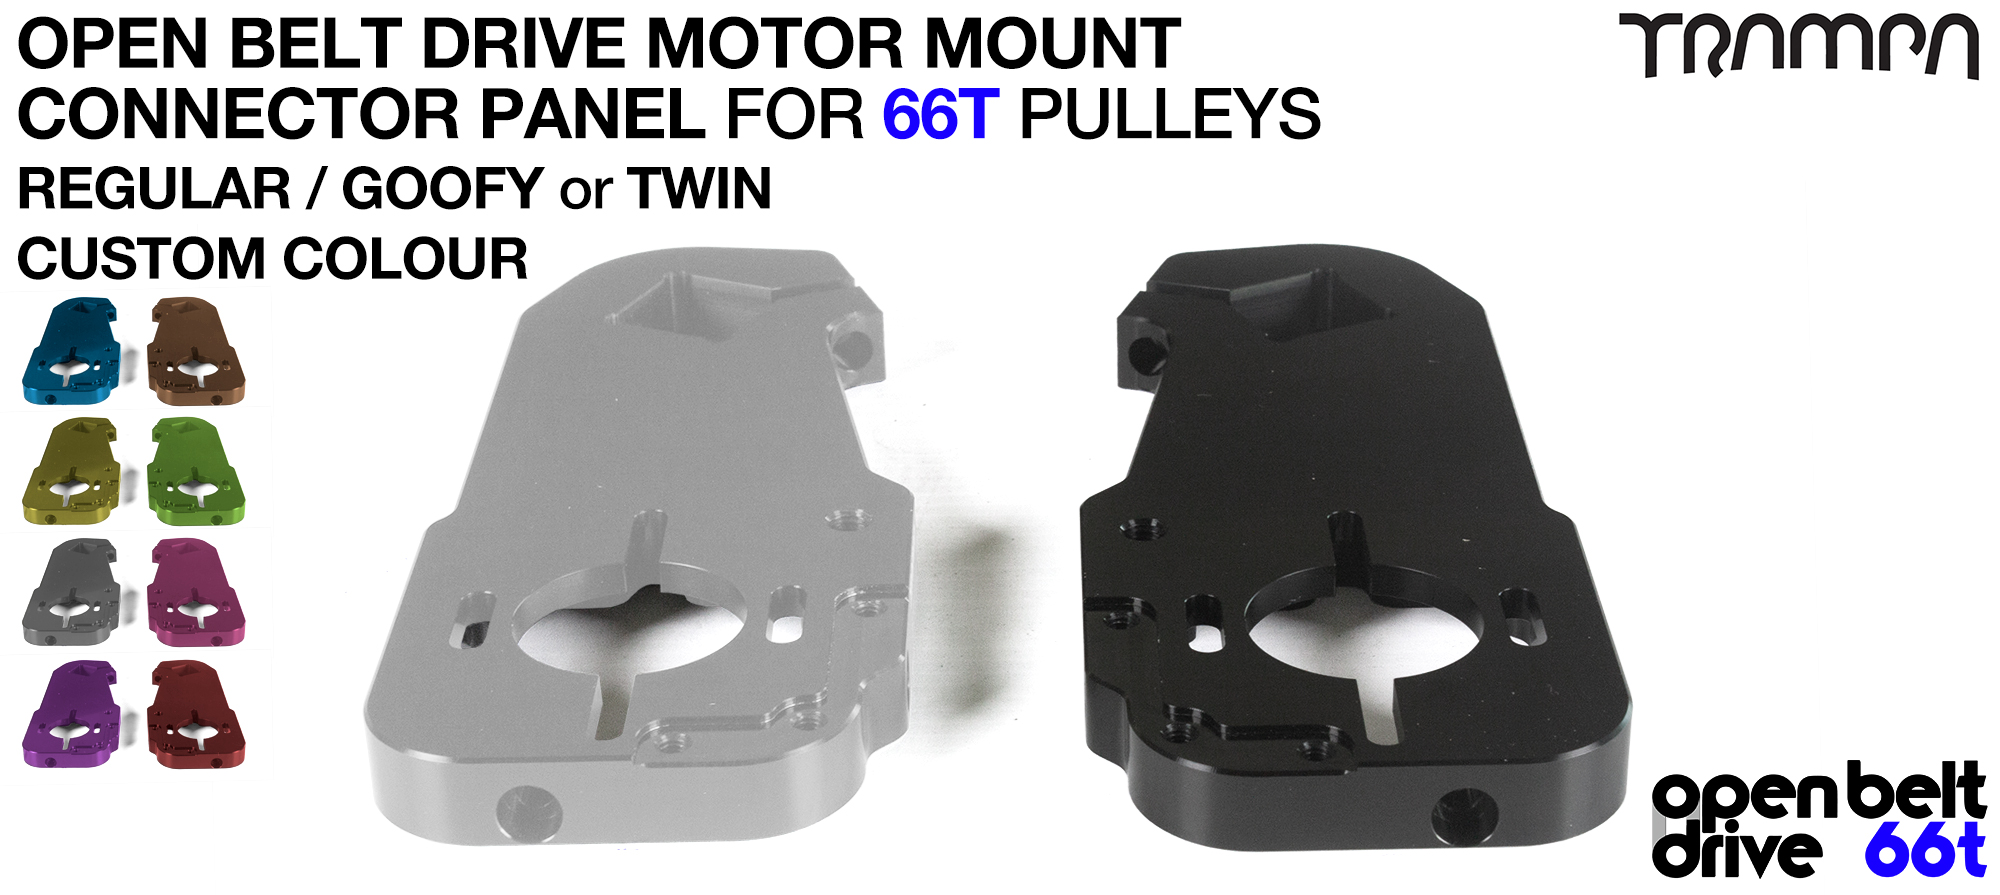 OBD Motor Mount Connector Panel for 66 tooth Pulleys - REGULAR or GOOFY